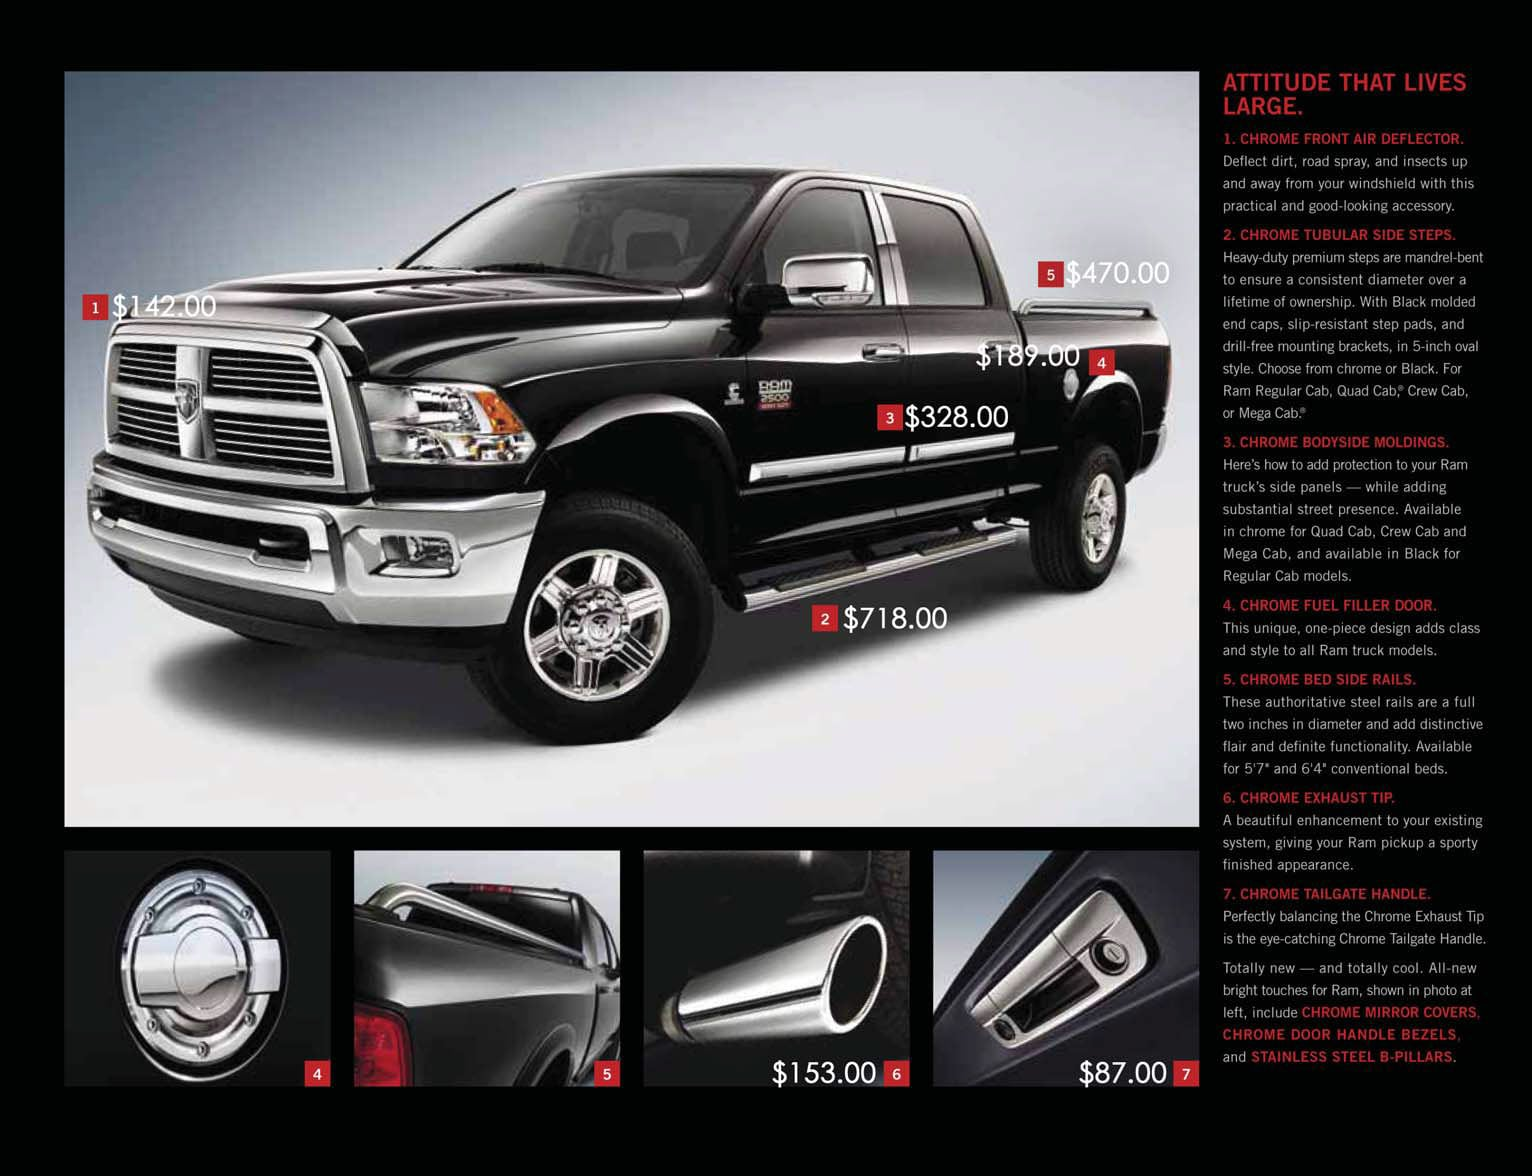 Ram Truck Accessories for Sale Near Las Vegas | Truck Parts at ...